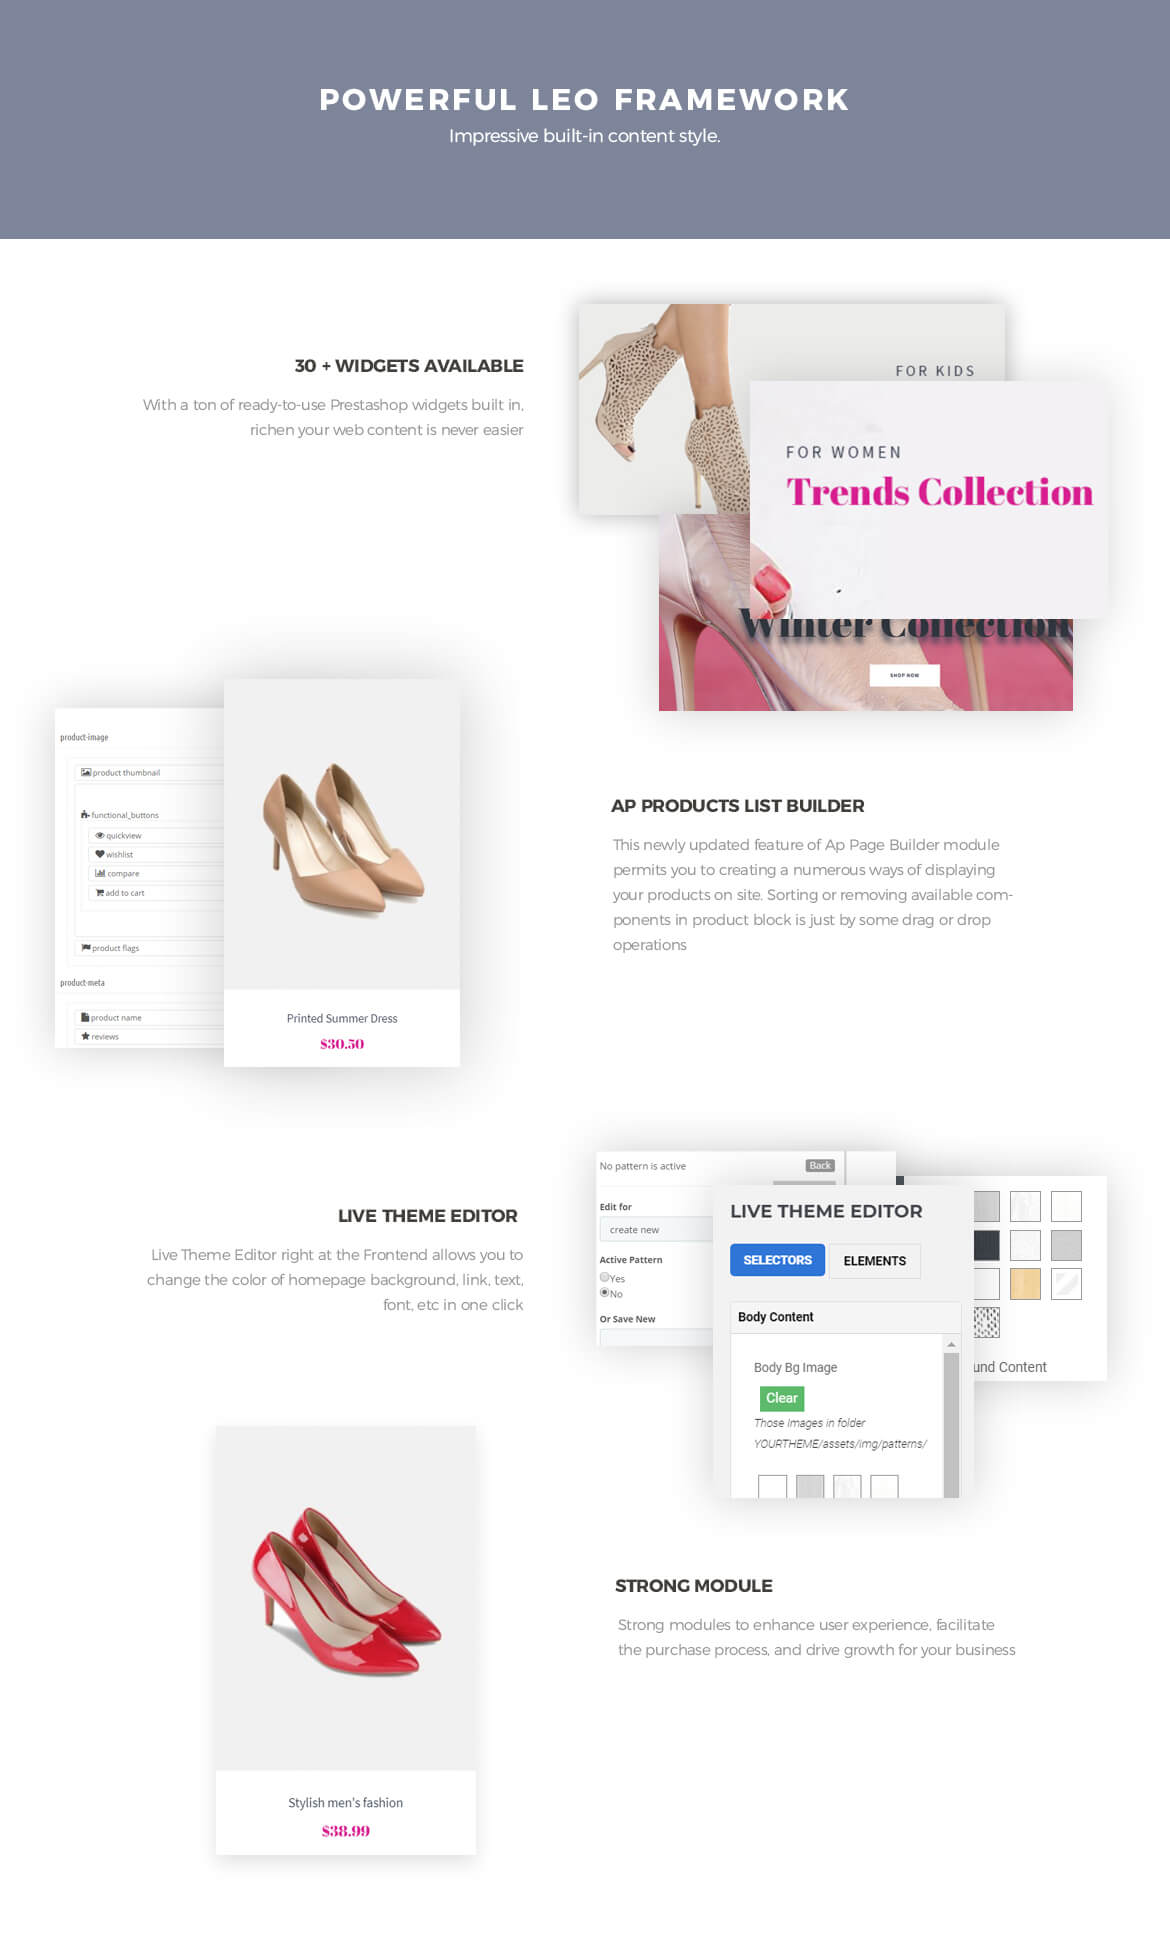 powerful prestashop framework - Leo Party Girl - Shoes and Fashion Prestashop 1.7 theme